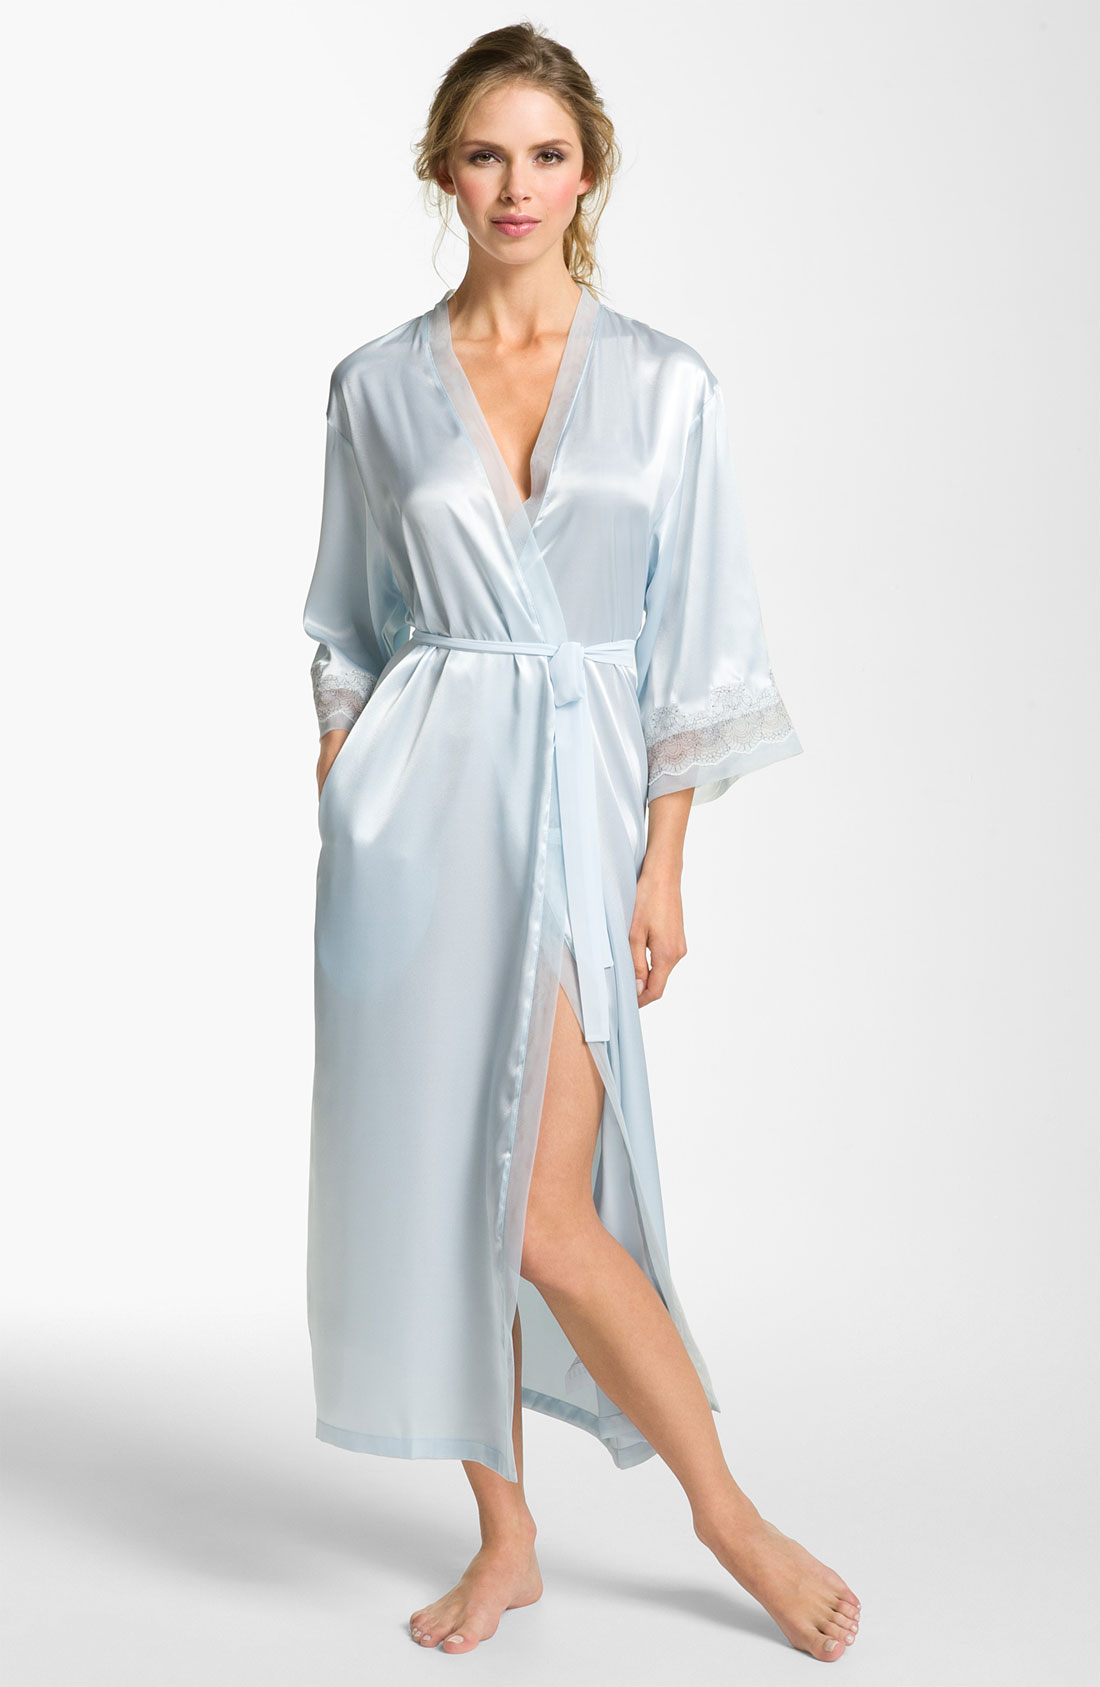 oscar de la renta elegant satin robe in blue blue vapor lyst. Black Bedroom Furniture Sets. Home Design Ideas